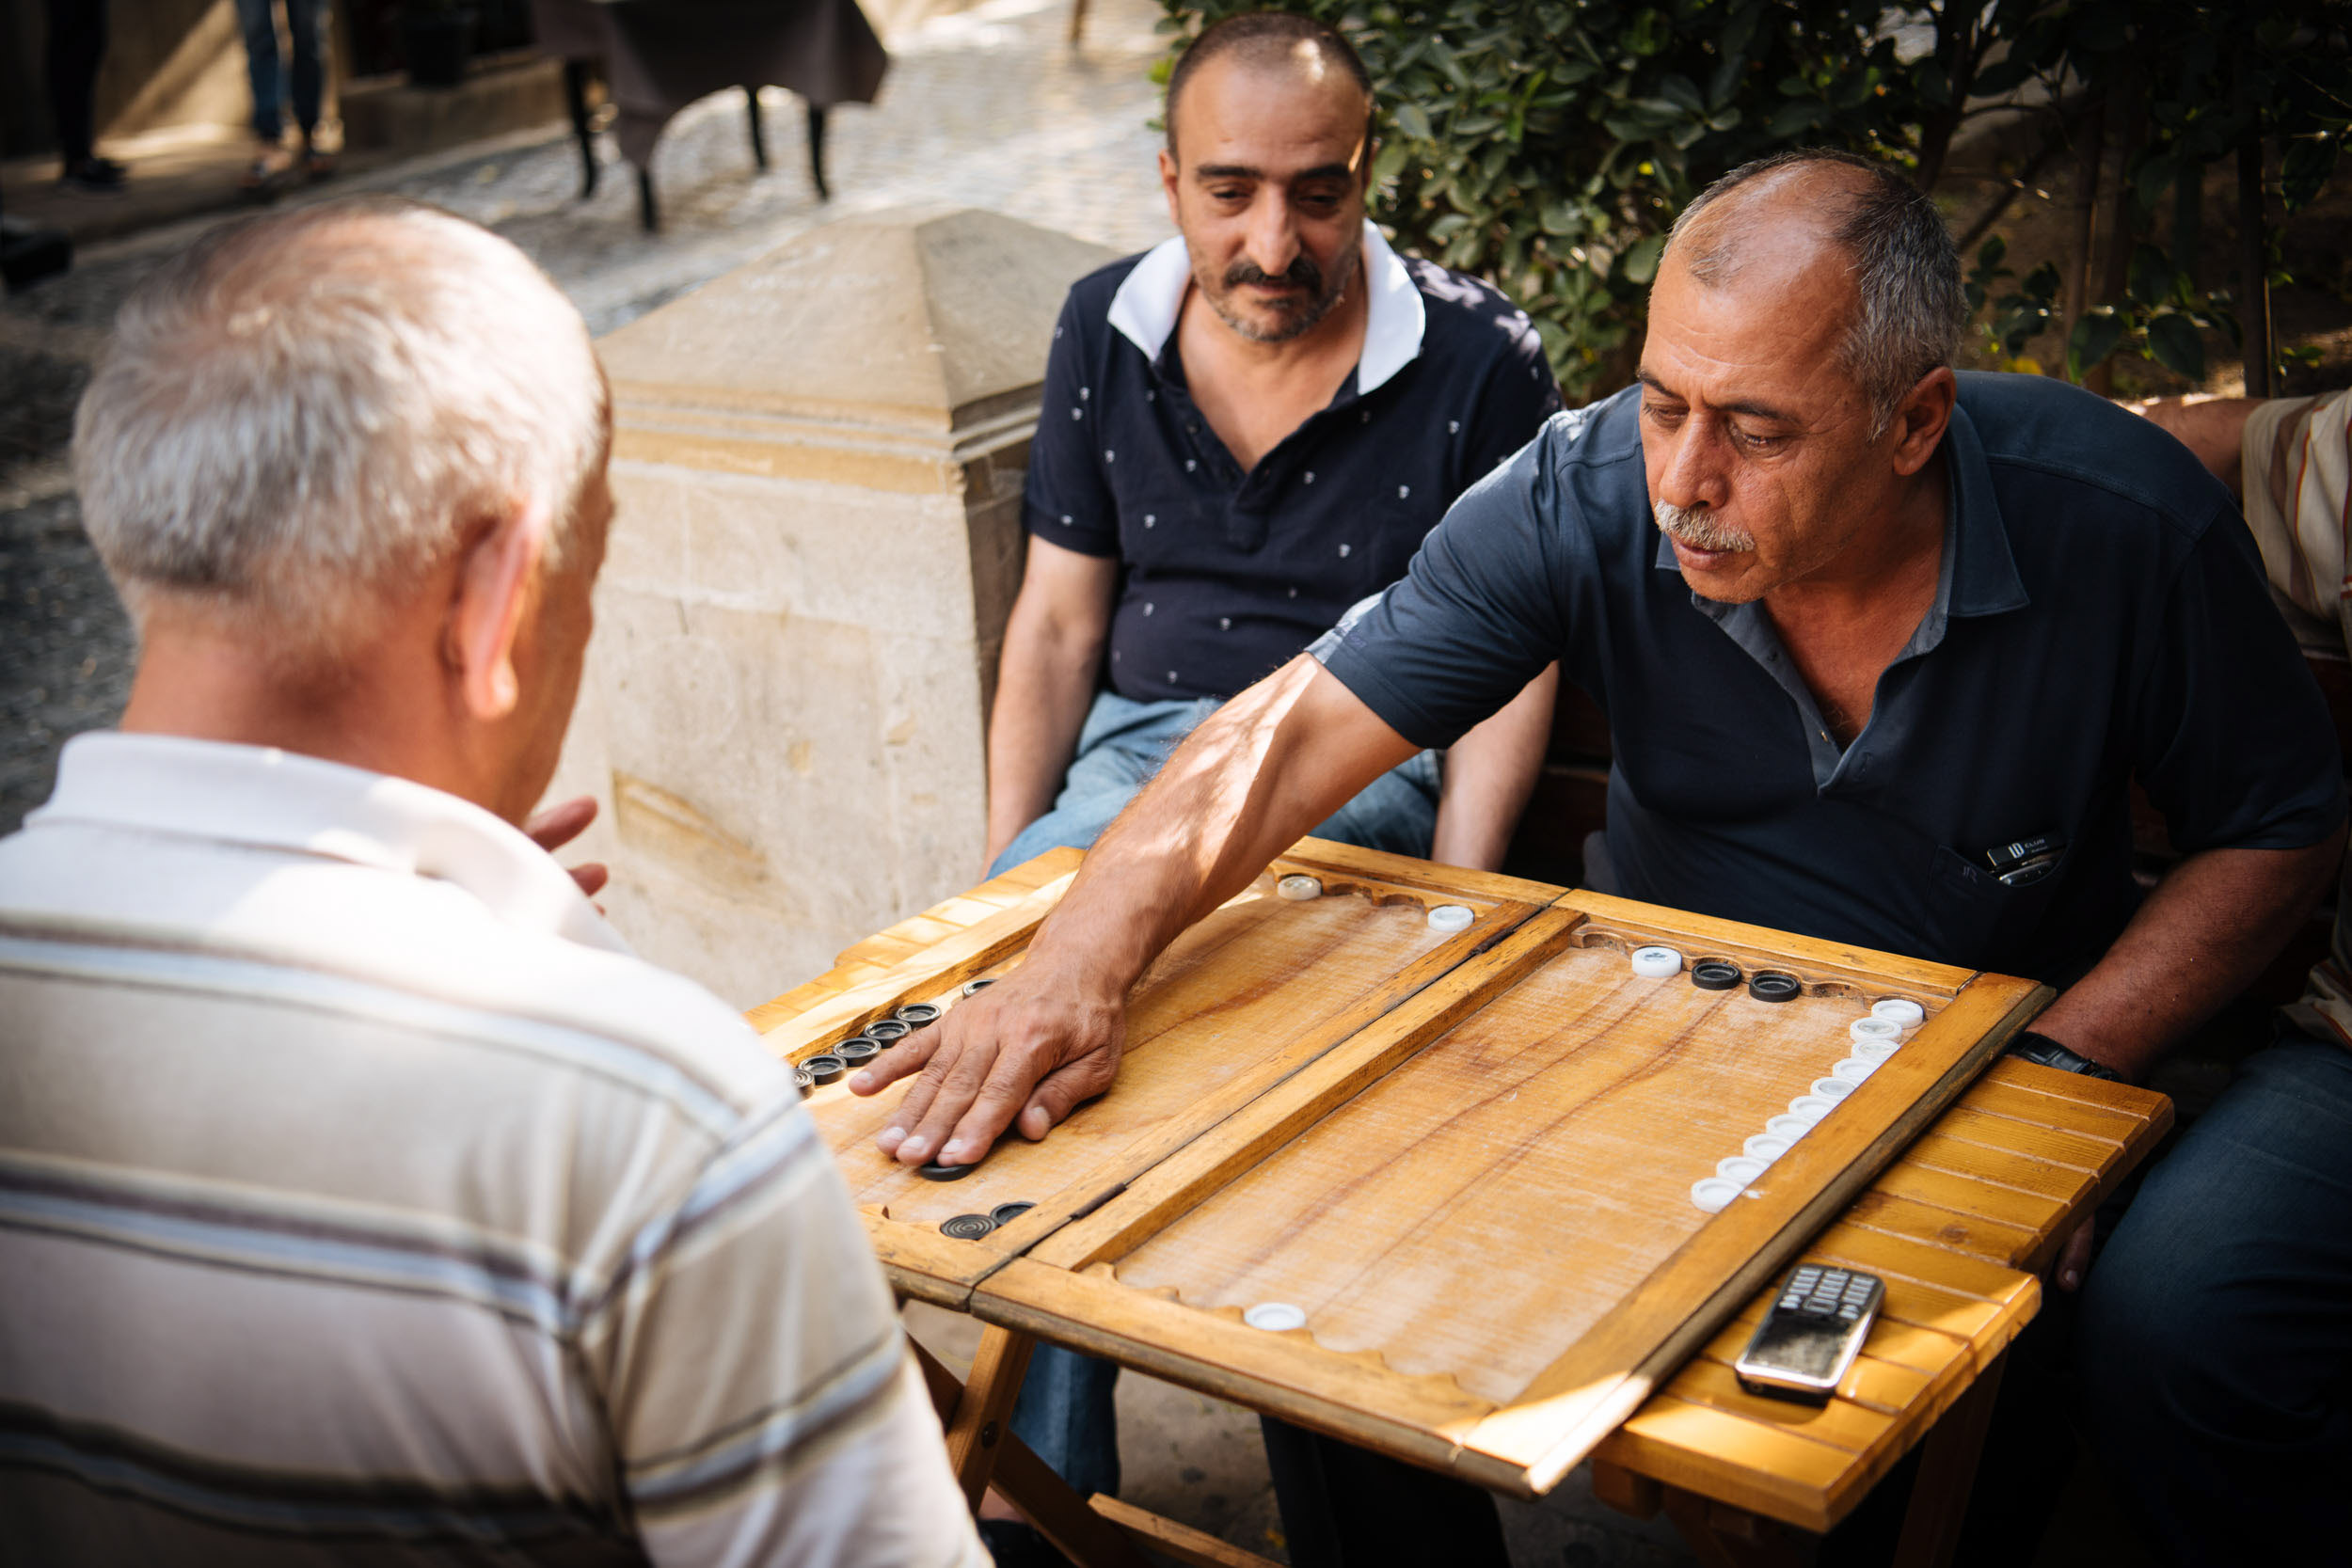 backgammon-game-men-playing-baku-azerbaijan-tradition